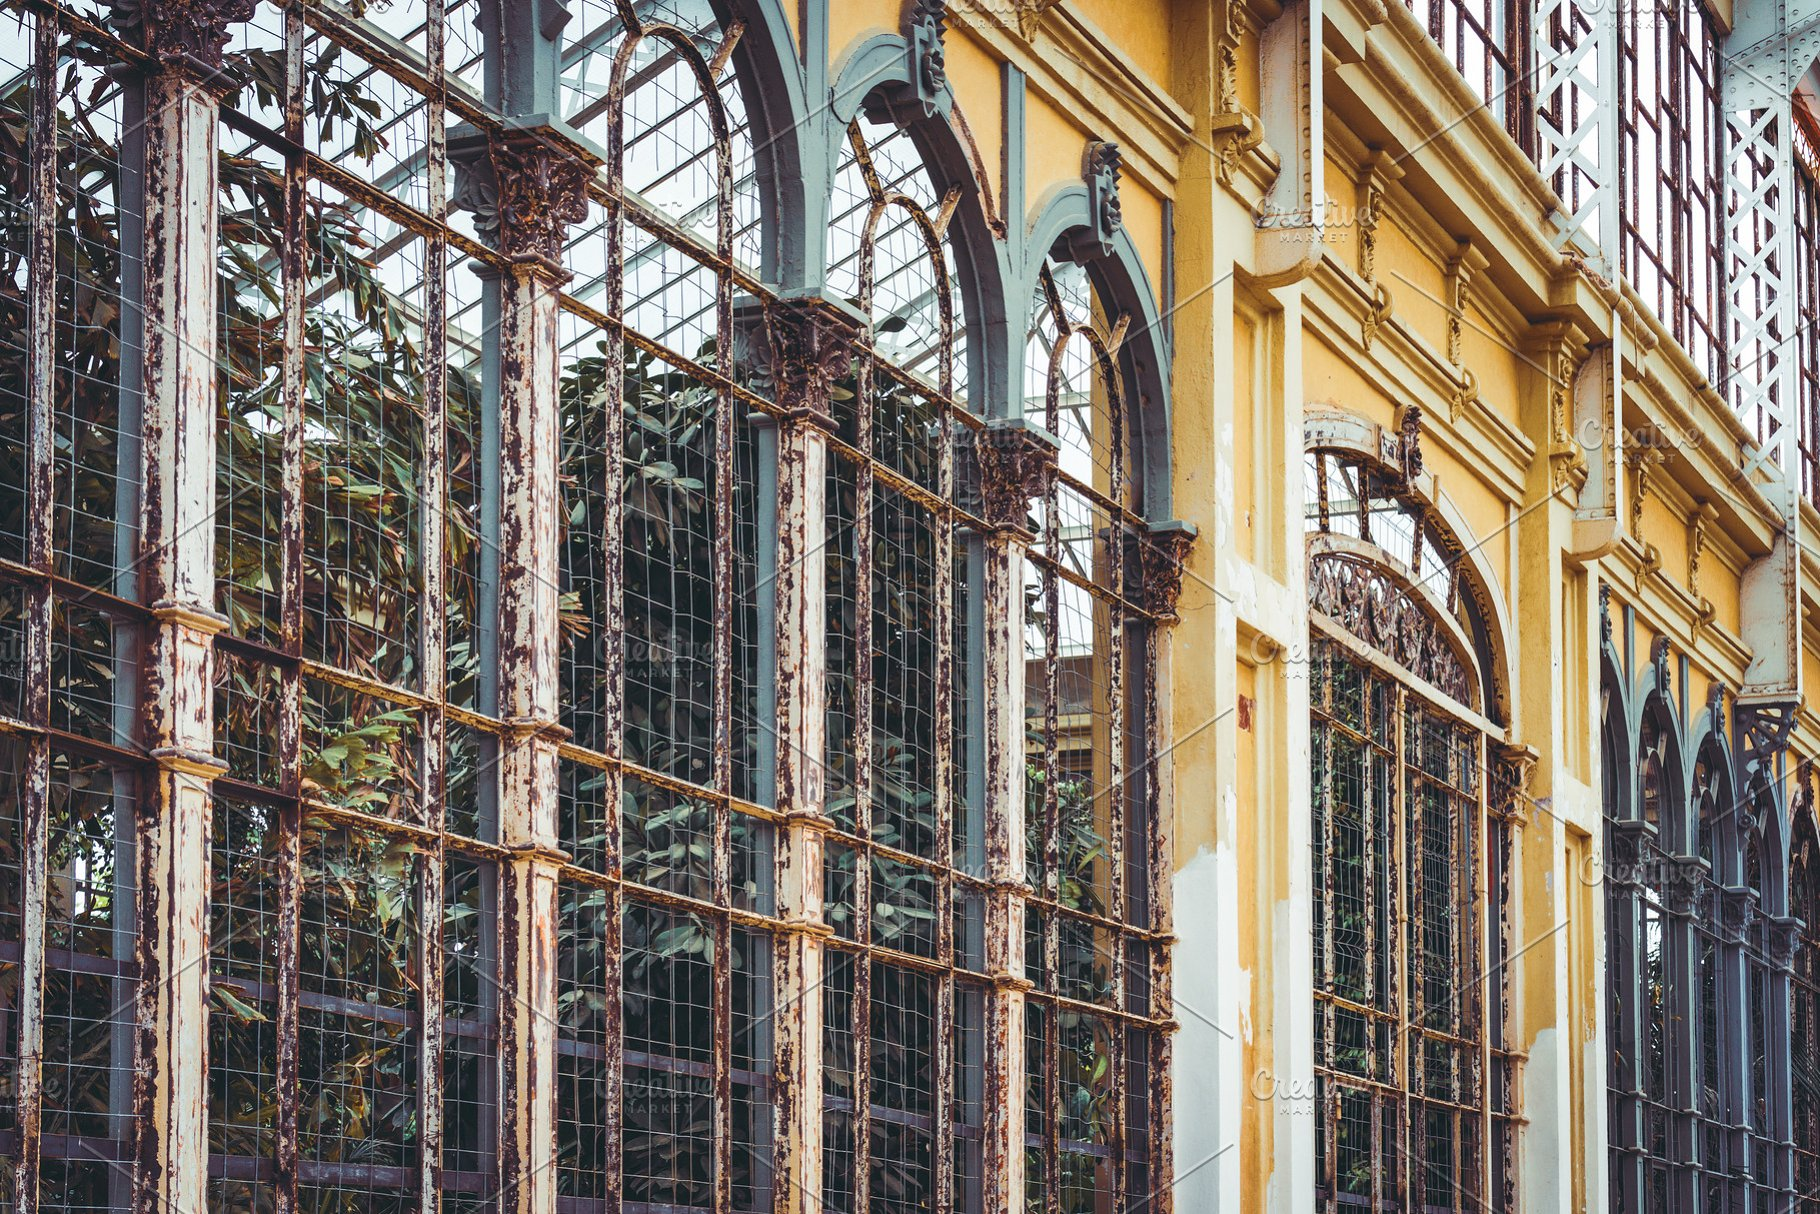 Arches of an old rusty greenhouse